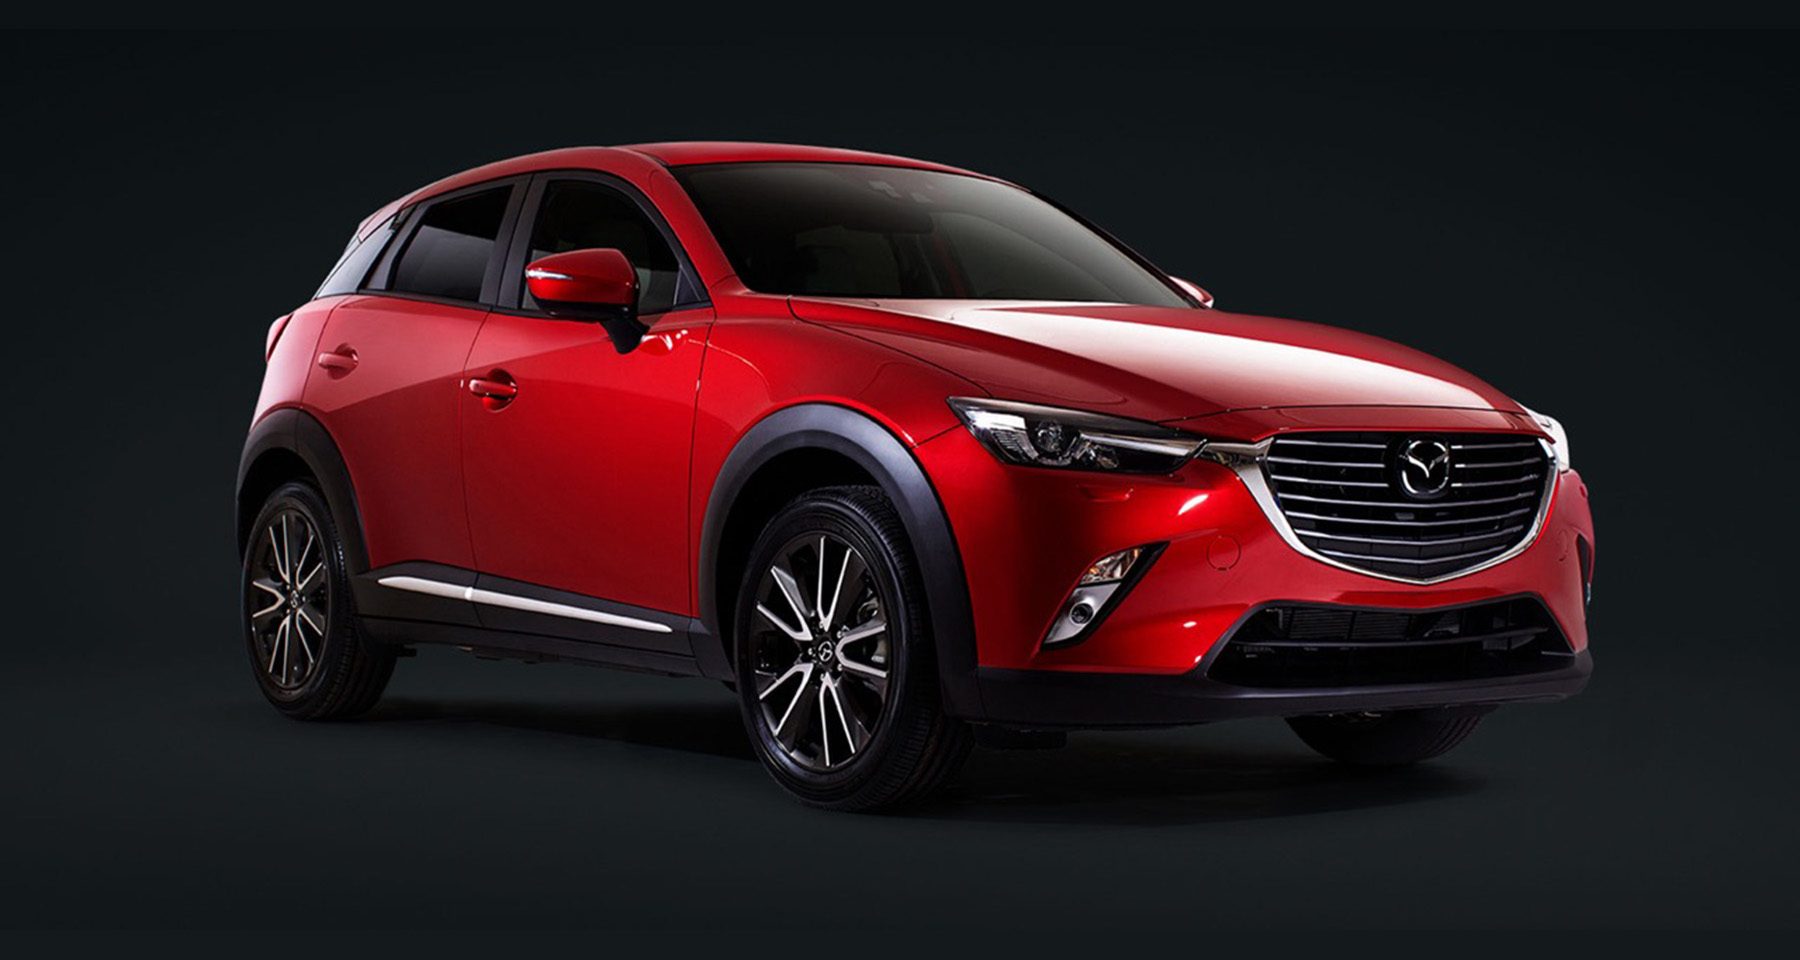 Bonnier News Brand Studio boosts Mazda brand, revenue